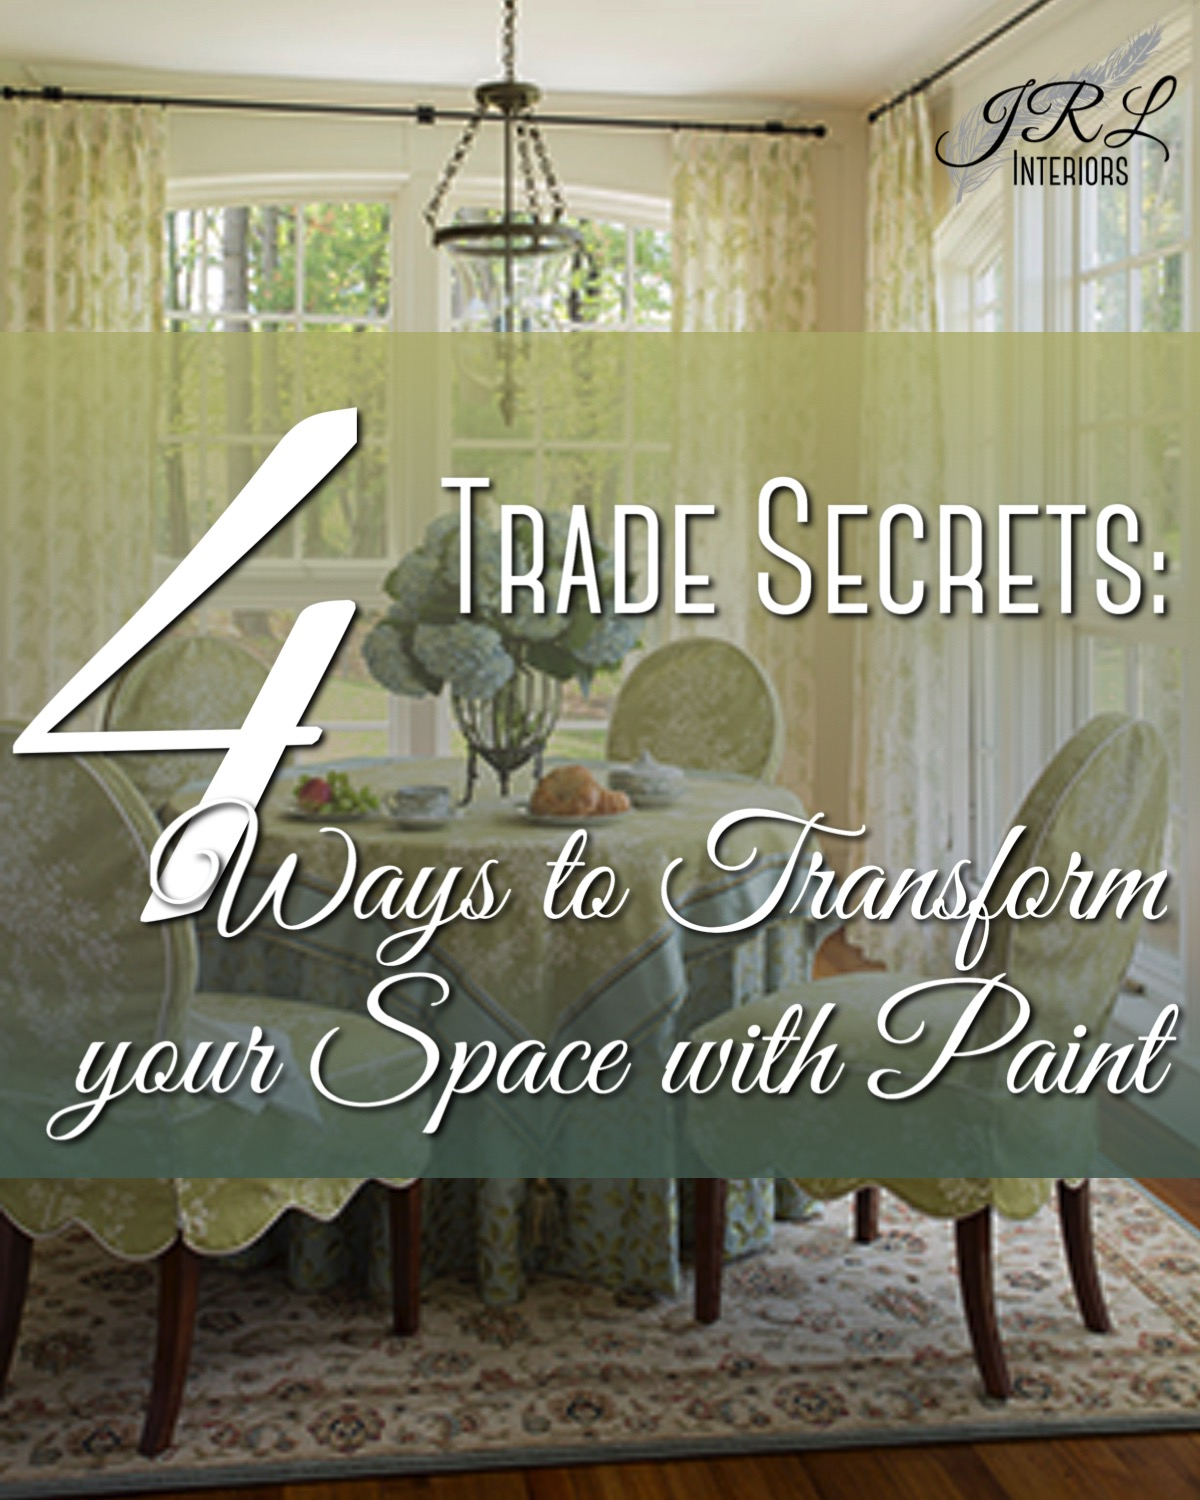 Trade Secrets. 4 Ways to Transform your Space with Paint.jpg